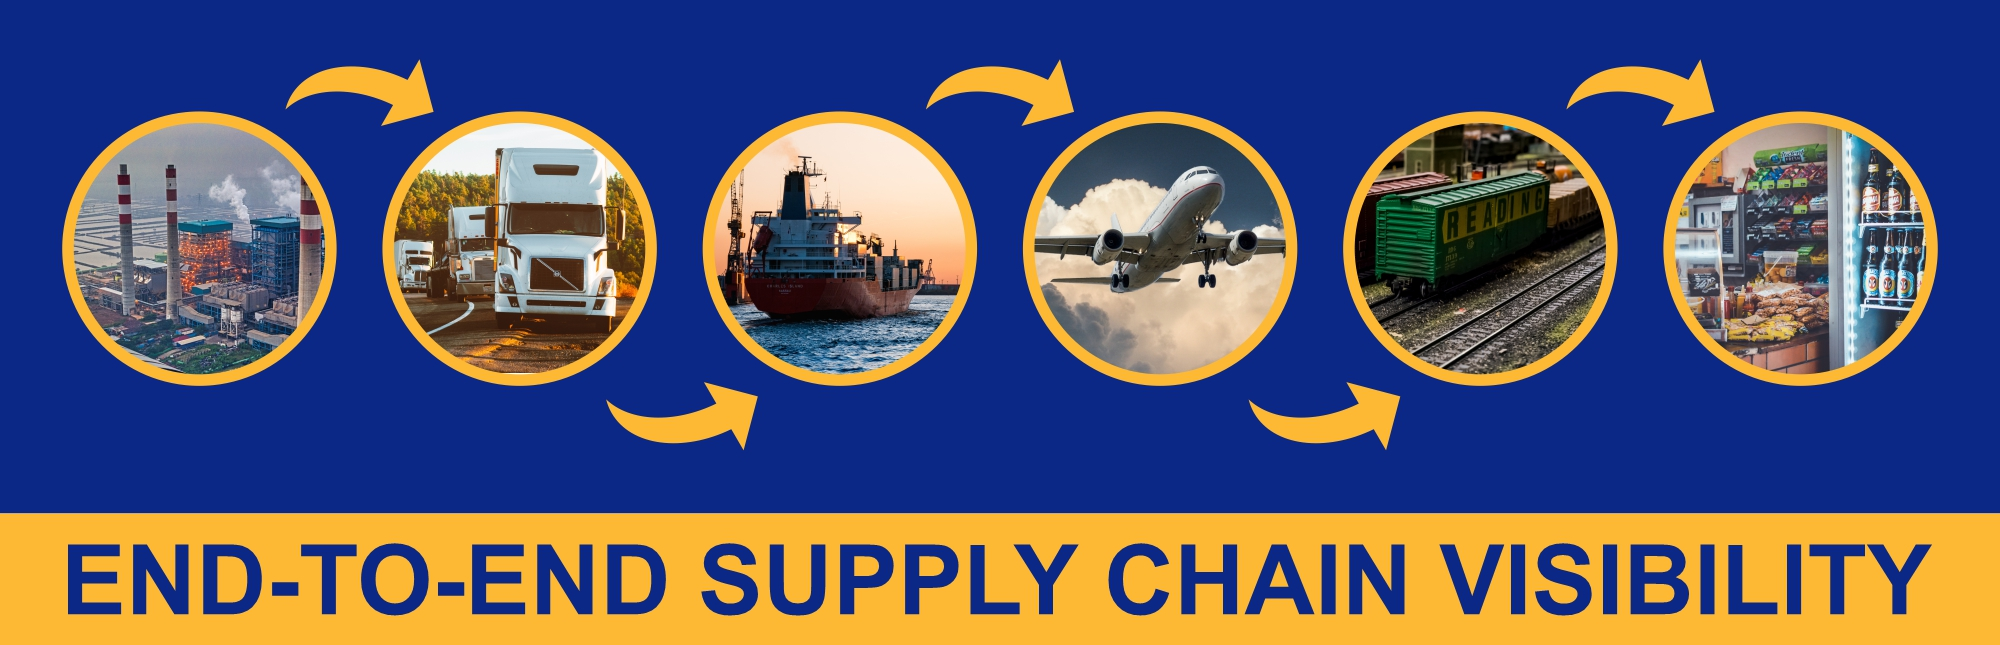 Why You Should Care about End-to-End Supply Chain Visibility